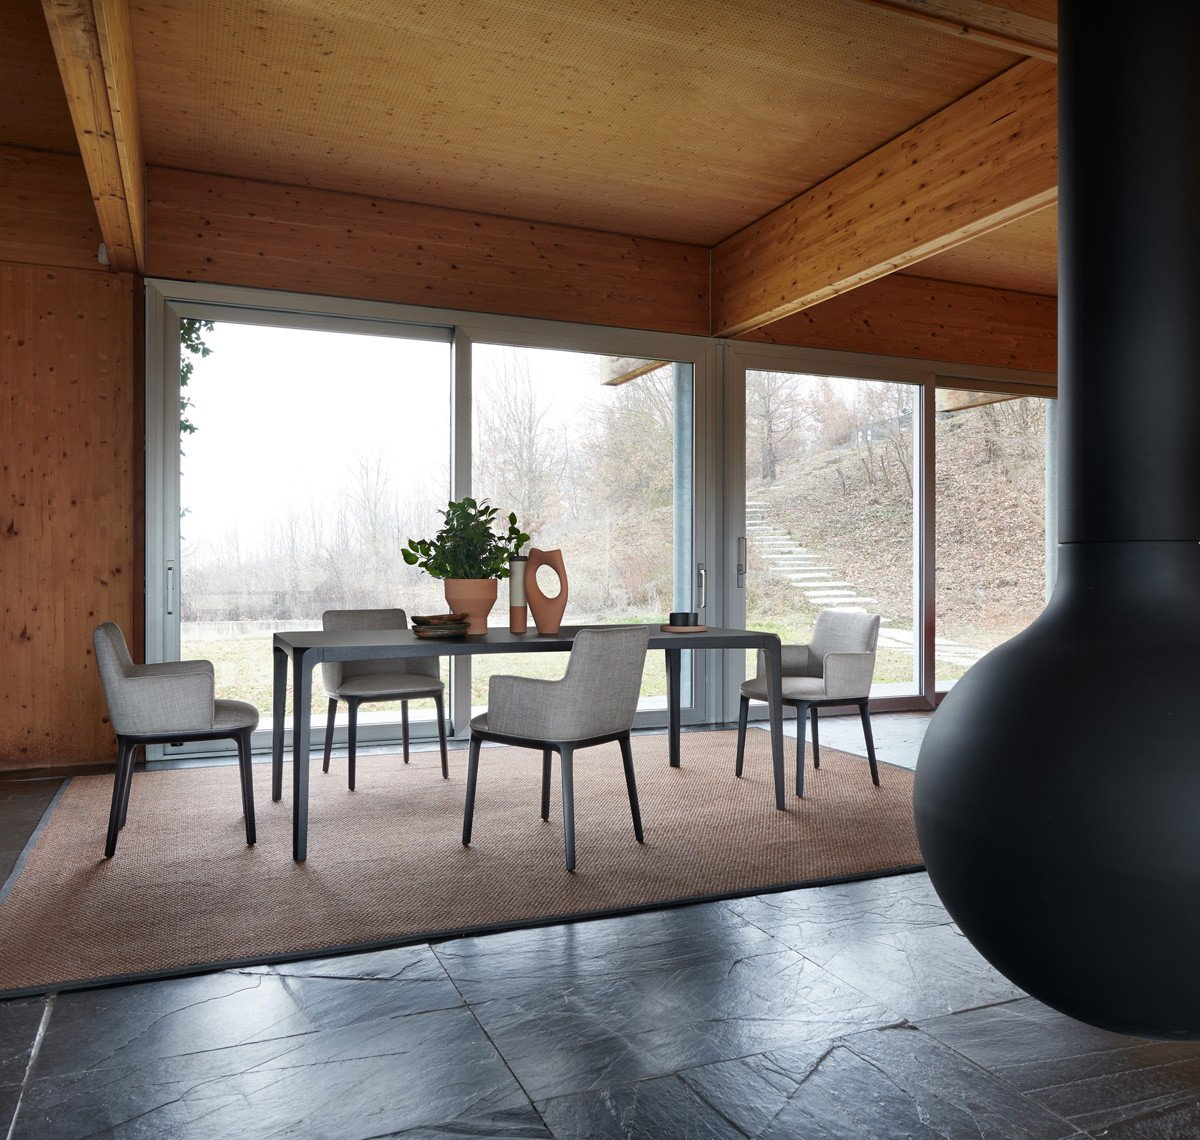 Candy Chair from Potocco, designed by Bernhardt & Vella